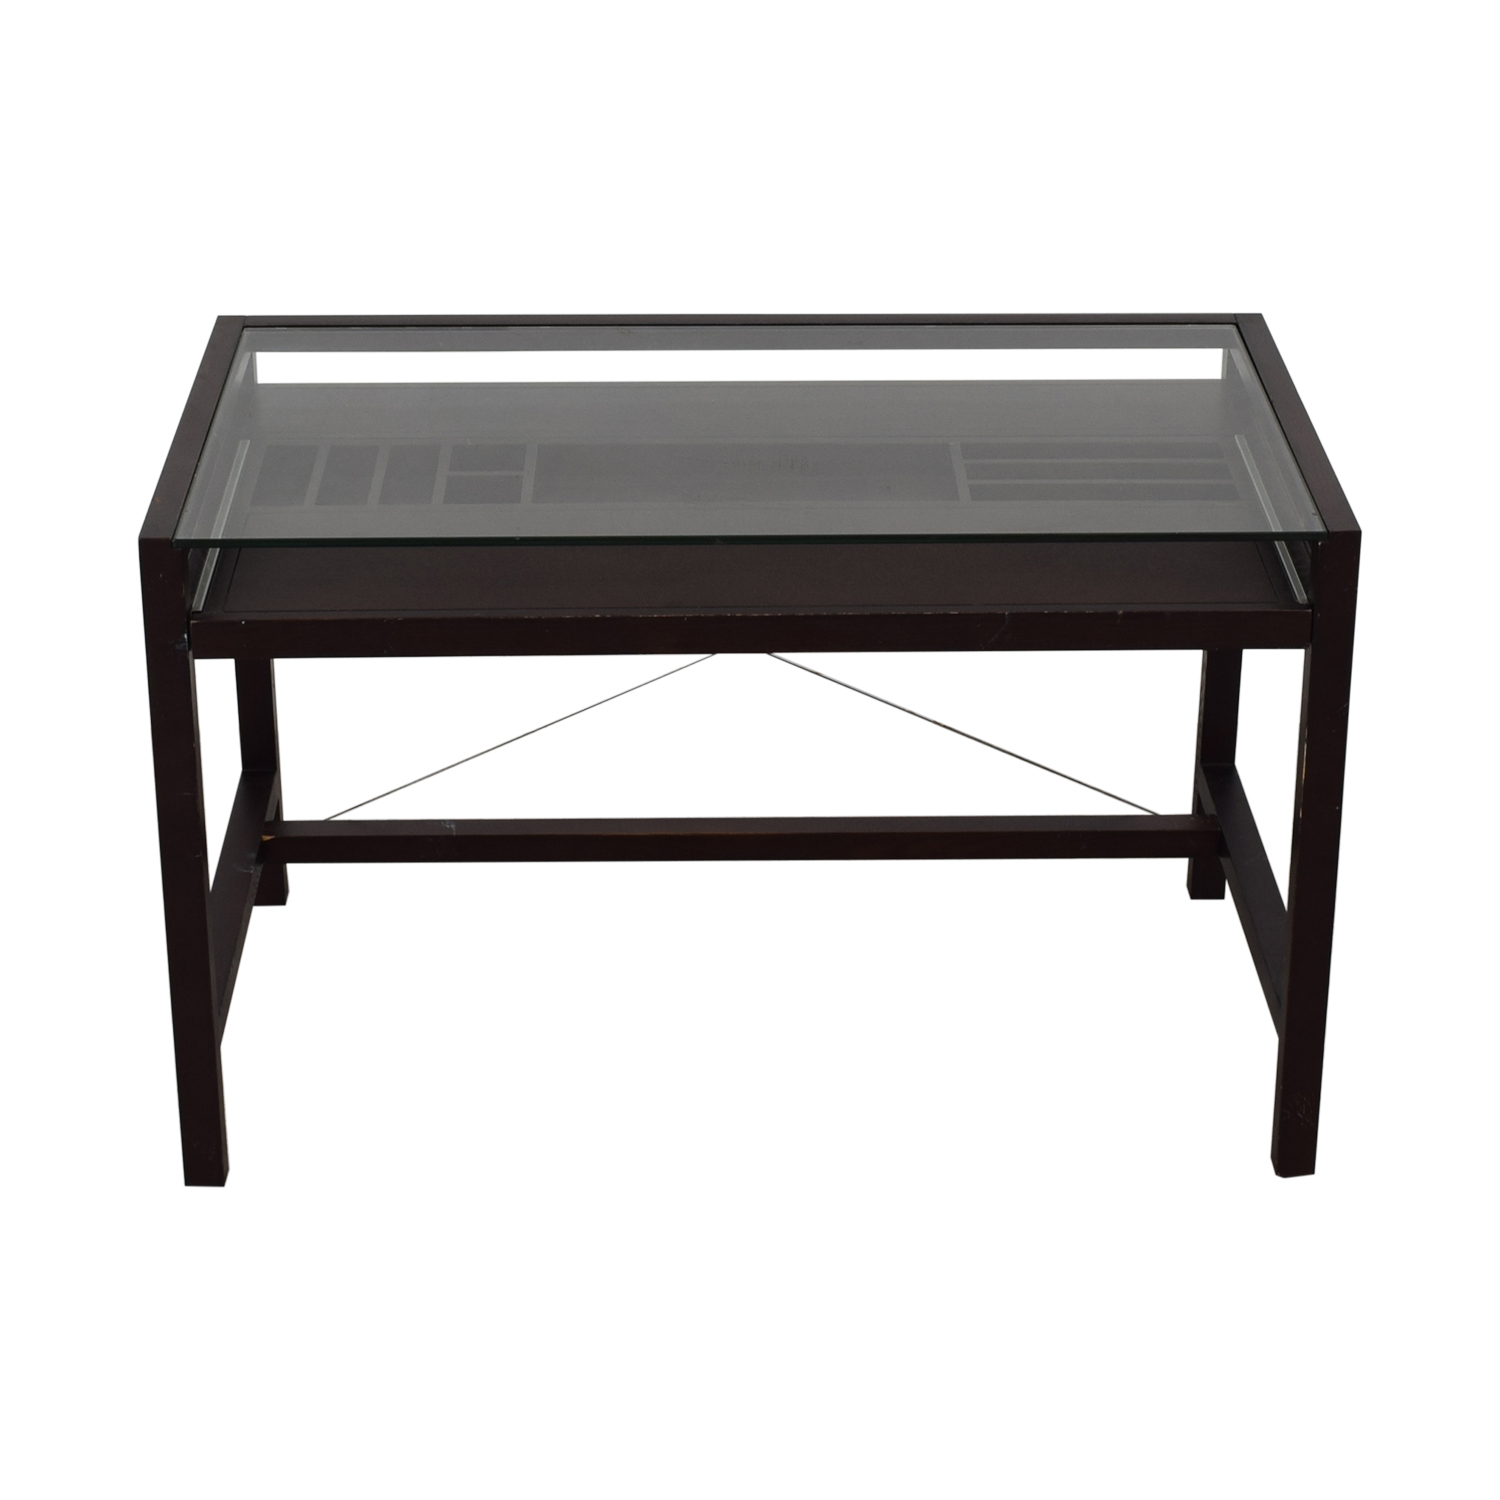 shop Crate & Barrel Glass and Wood Walker Desk Crate & Barrel Tables